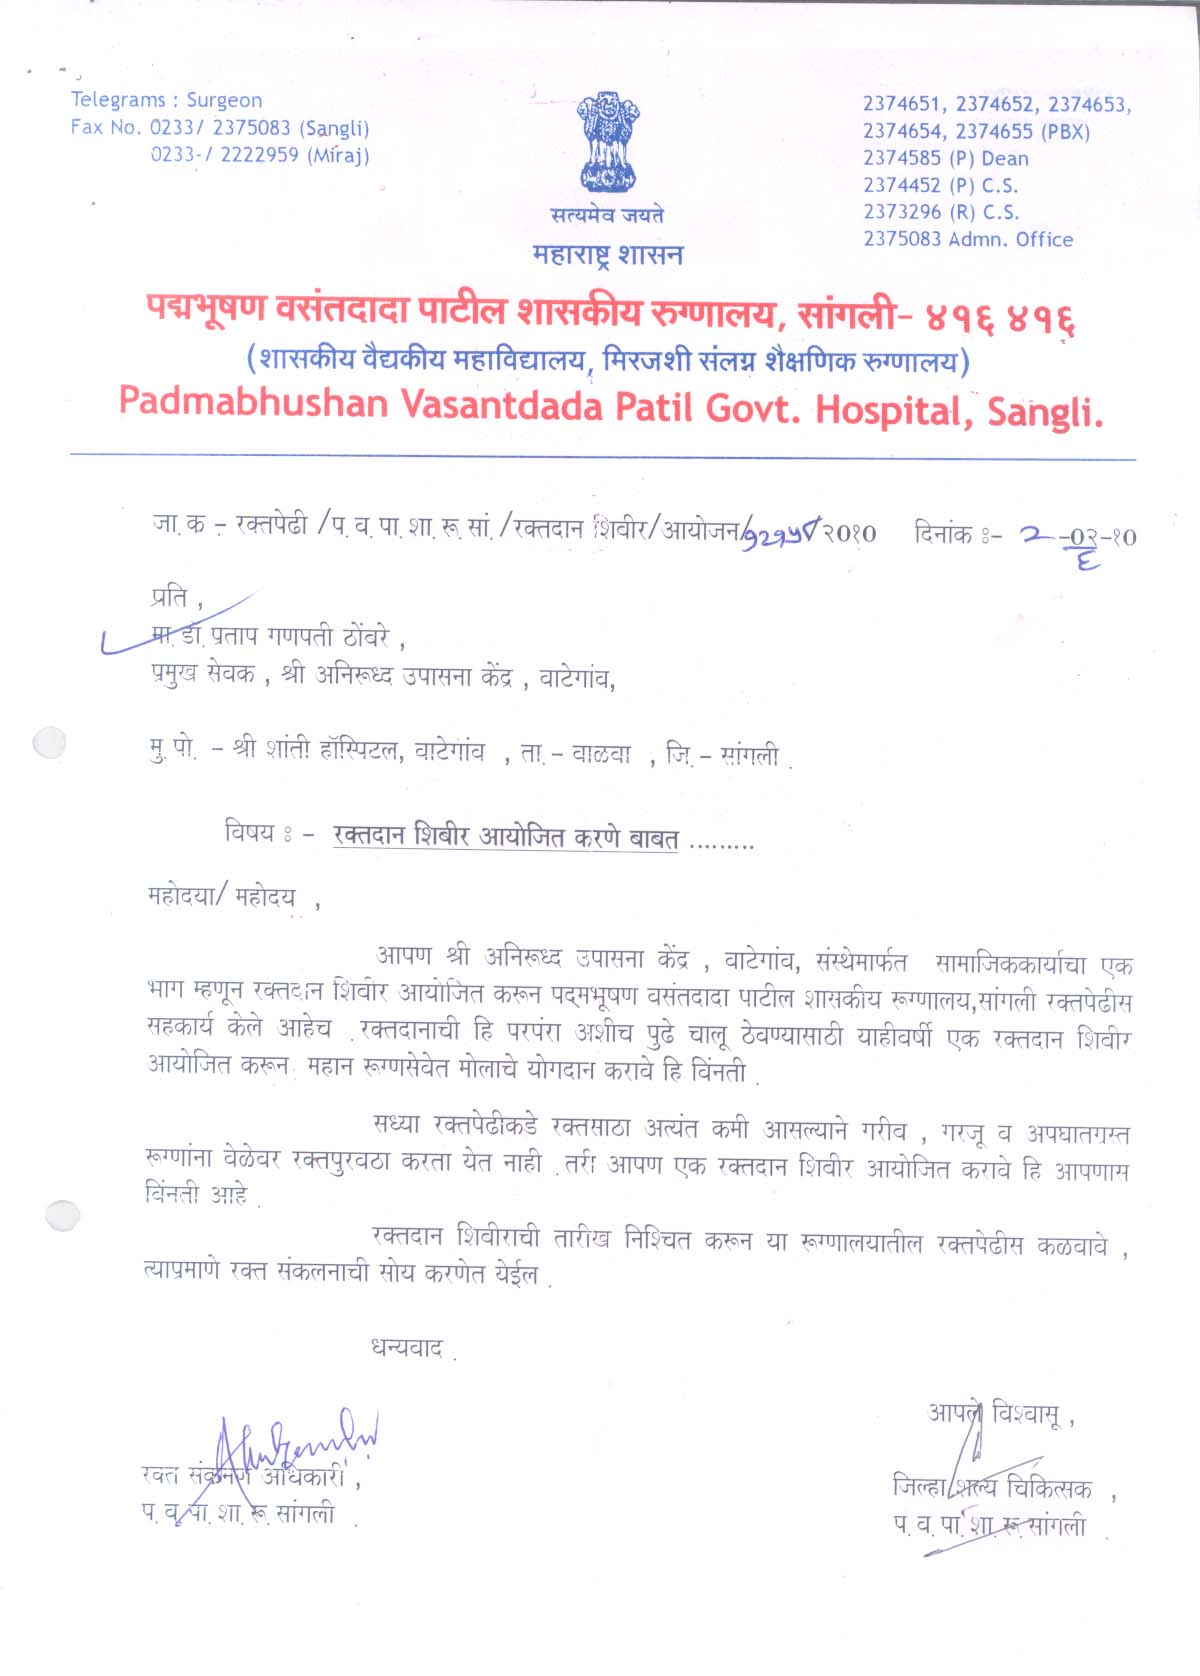 appreciation letter blood donation camps shree aniruddha upasana appreciation letter from vasantdada patil hospital sangli 2010 for aniruddhafoundation compassion